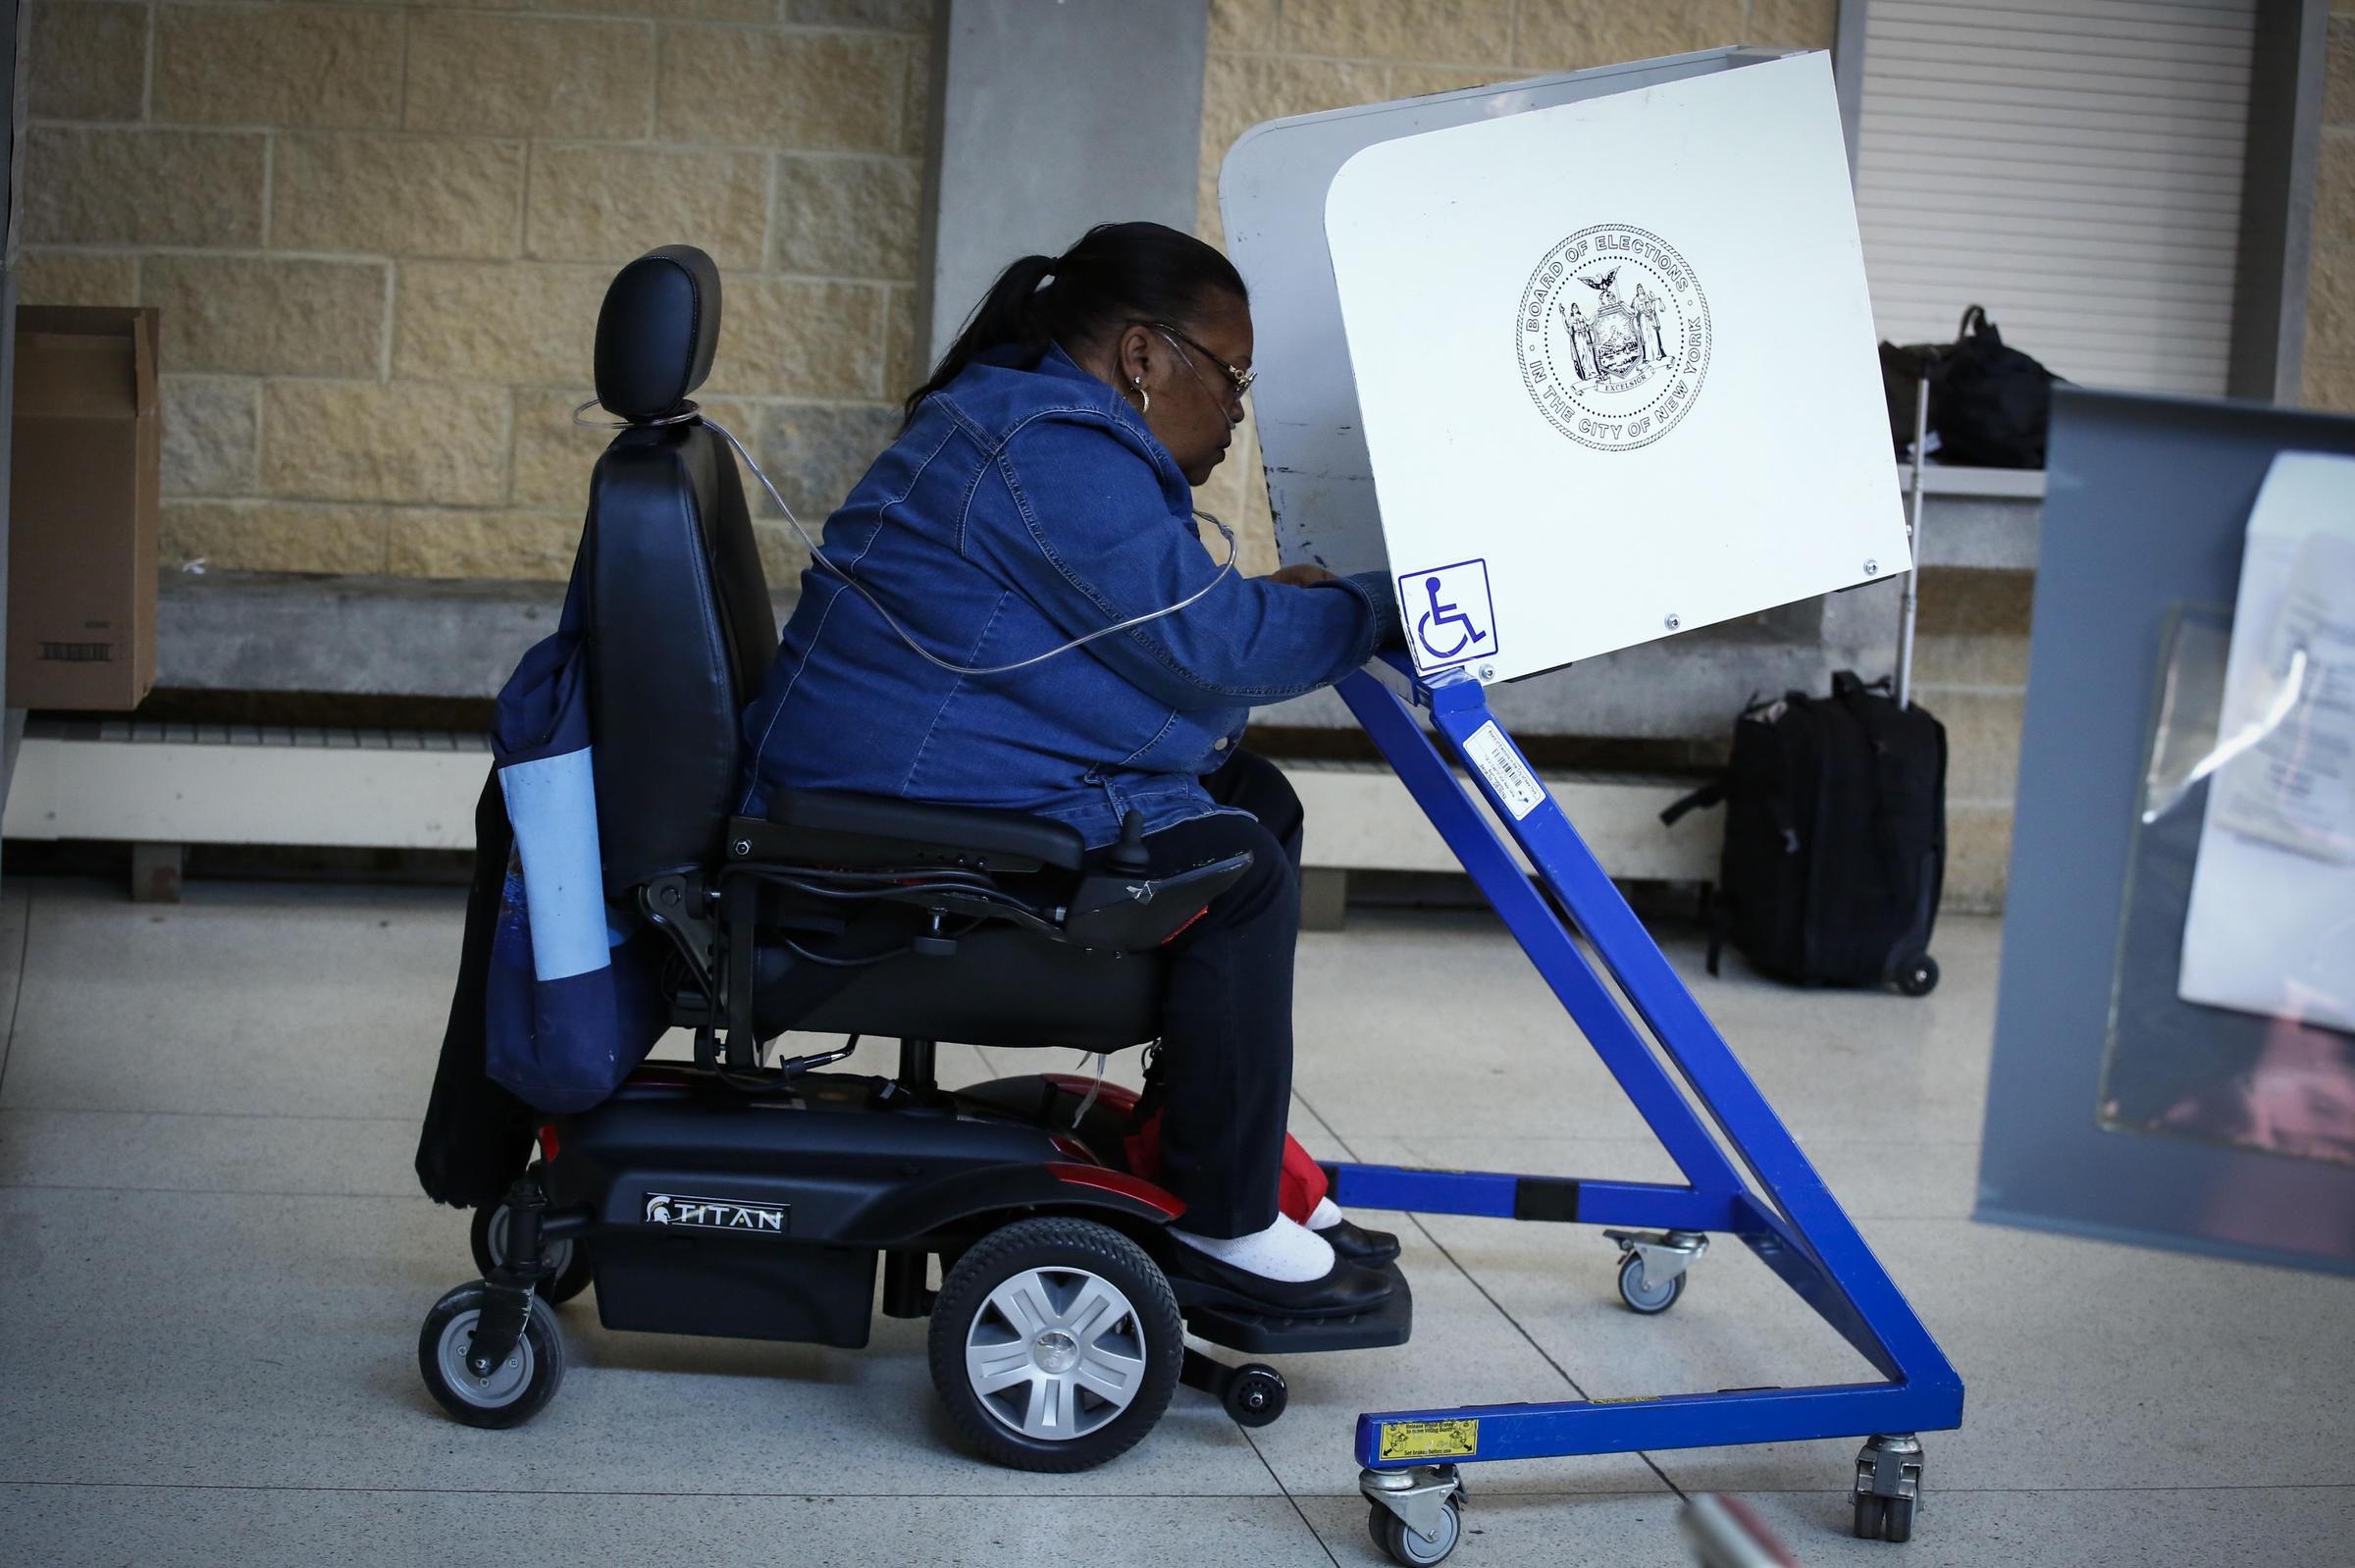 wheelchair fight camping rocking chairs voters with disabilities for more accessible polling places wfae a woman casts her vote at station in brooklyn the new york state presidential primary on april 19